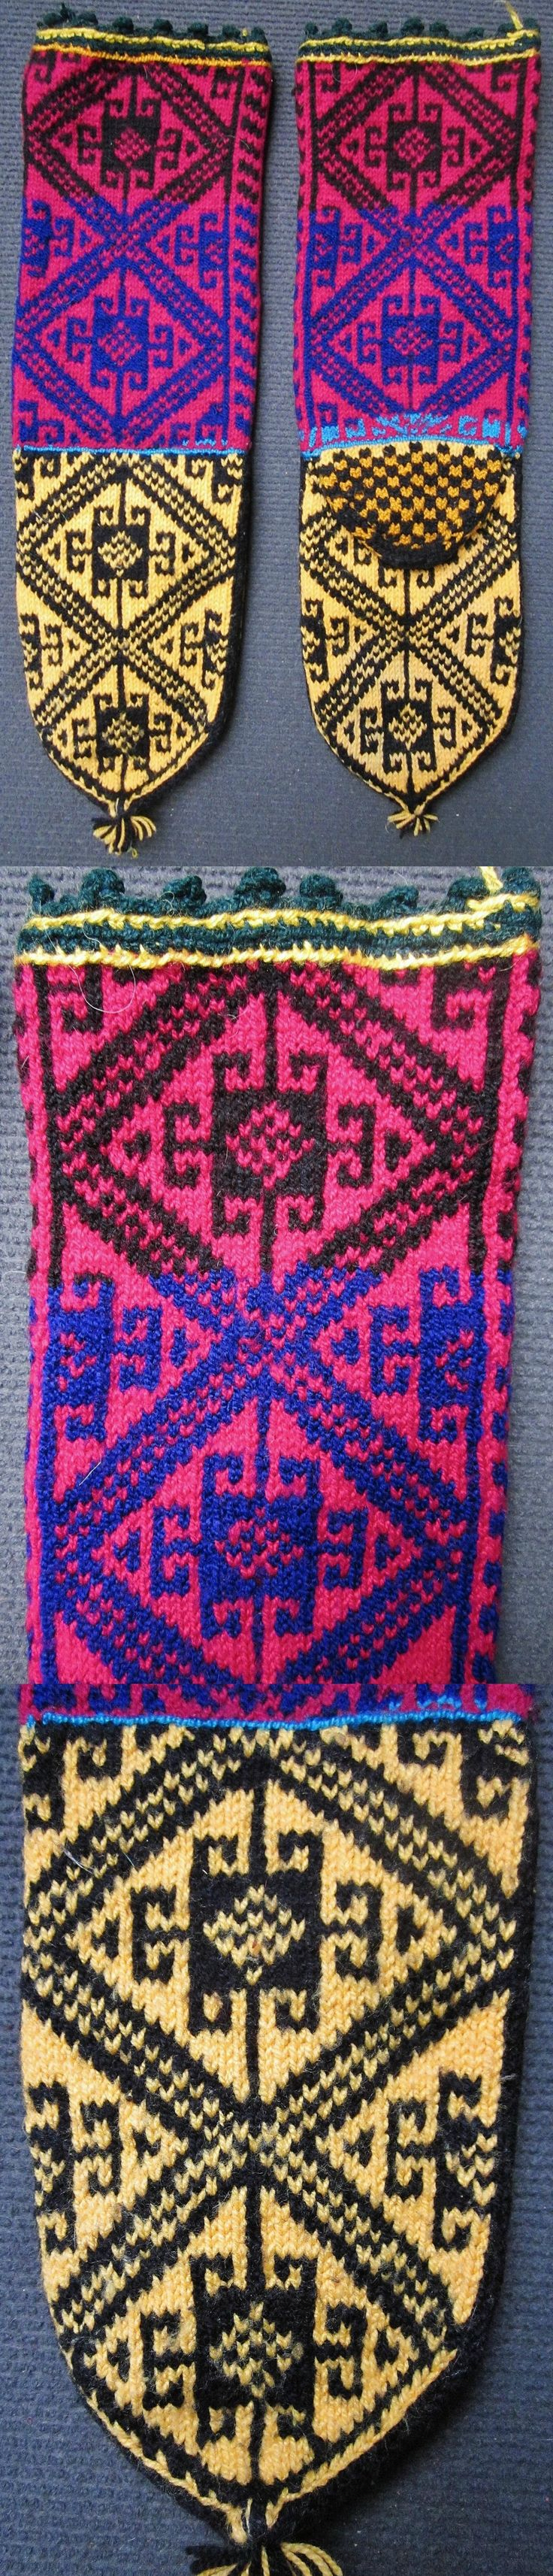 Traditional hand-knitted woollen stockings, for men.   From the Konya province.  Late 20th century.  The composite pattern shows 'koçboynuzu' (= 'ram's horn', which symbolises male fertility, male power and heroism) inside diamond-shaped 'ayna' (mirror), which is an amulet against the evil eye. (Inv.nr. çor014 - Kavak Costume Collection - Antwerpen/Belgium).